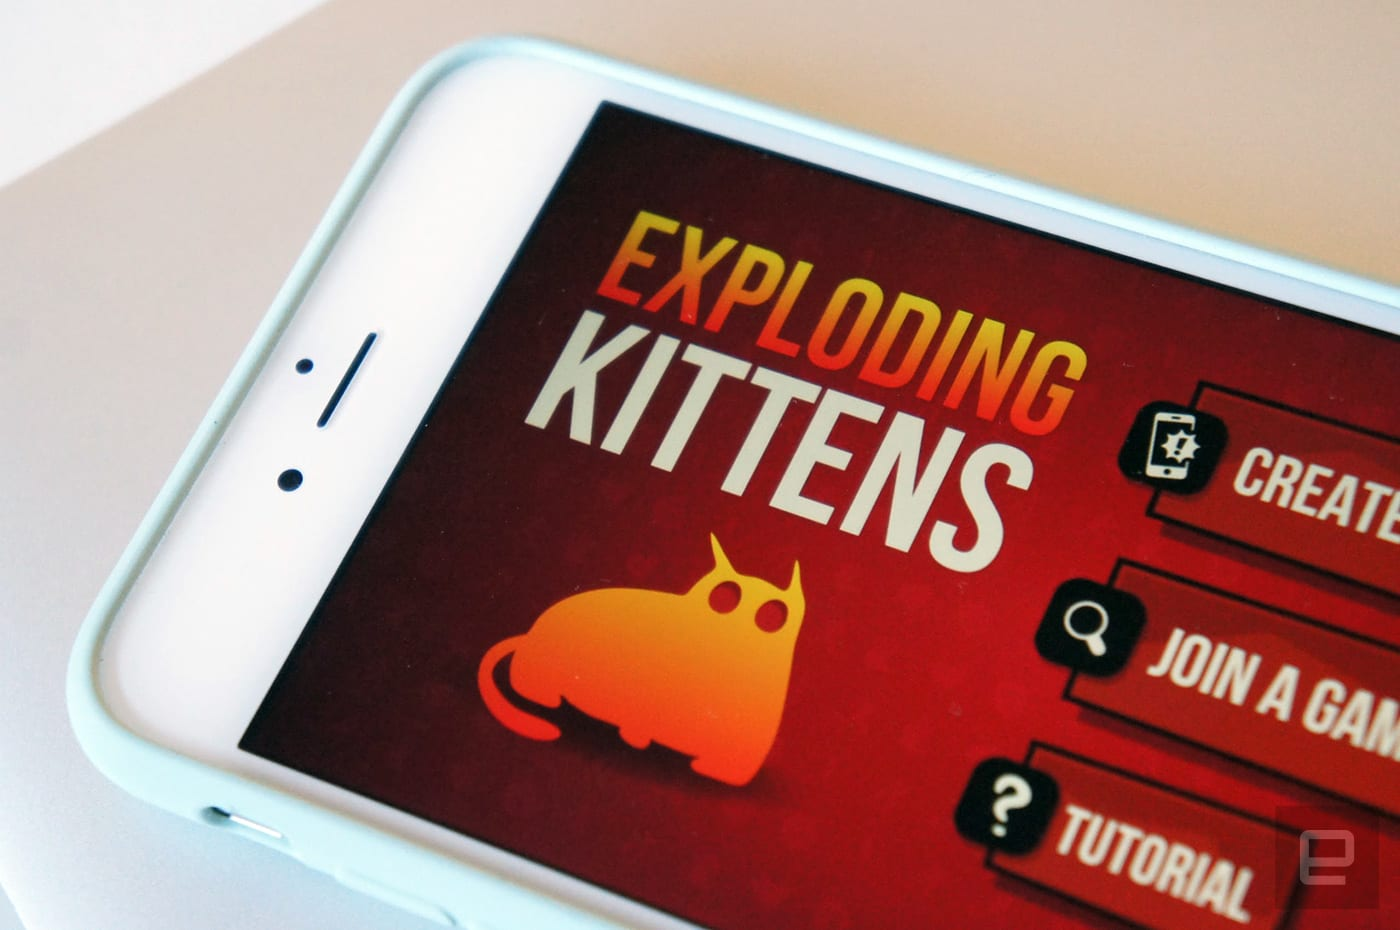 Exploding Kittens' comes to iOS with local multiplayer